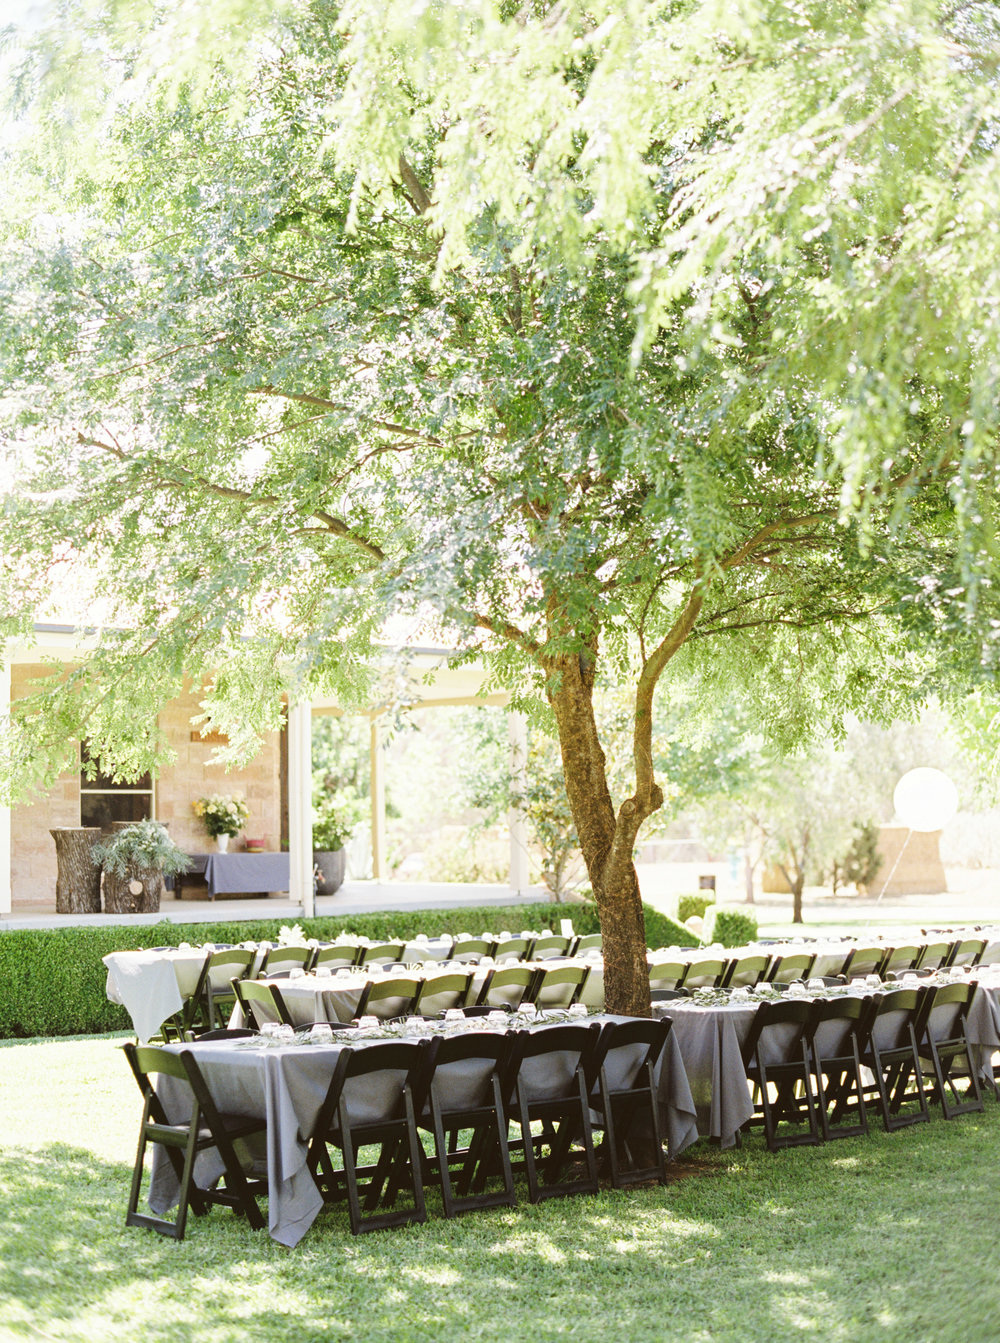 00072- Olive Tree Mediterranean Wedding in Mudgee NSW Australia Fine Art Film Wedding Lifestyle Photographer Sheri McMahon_.jpg